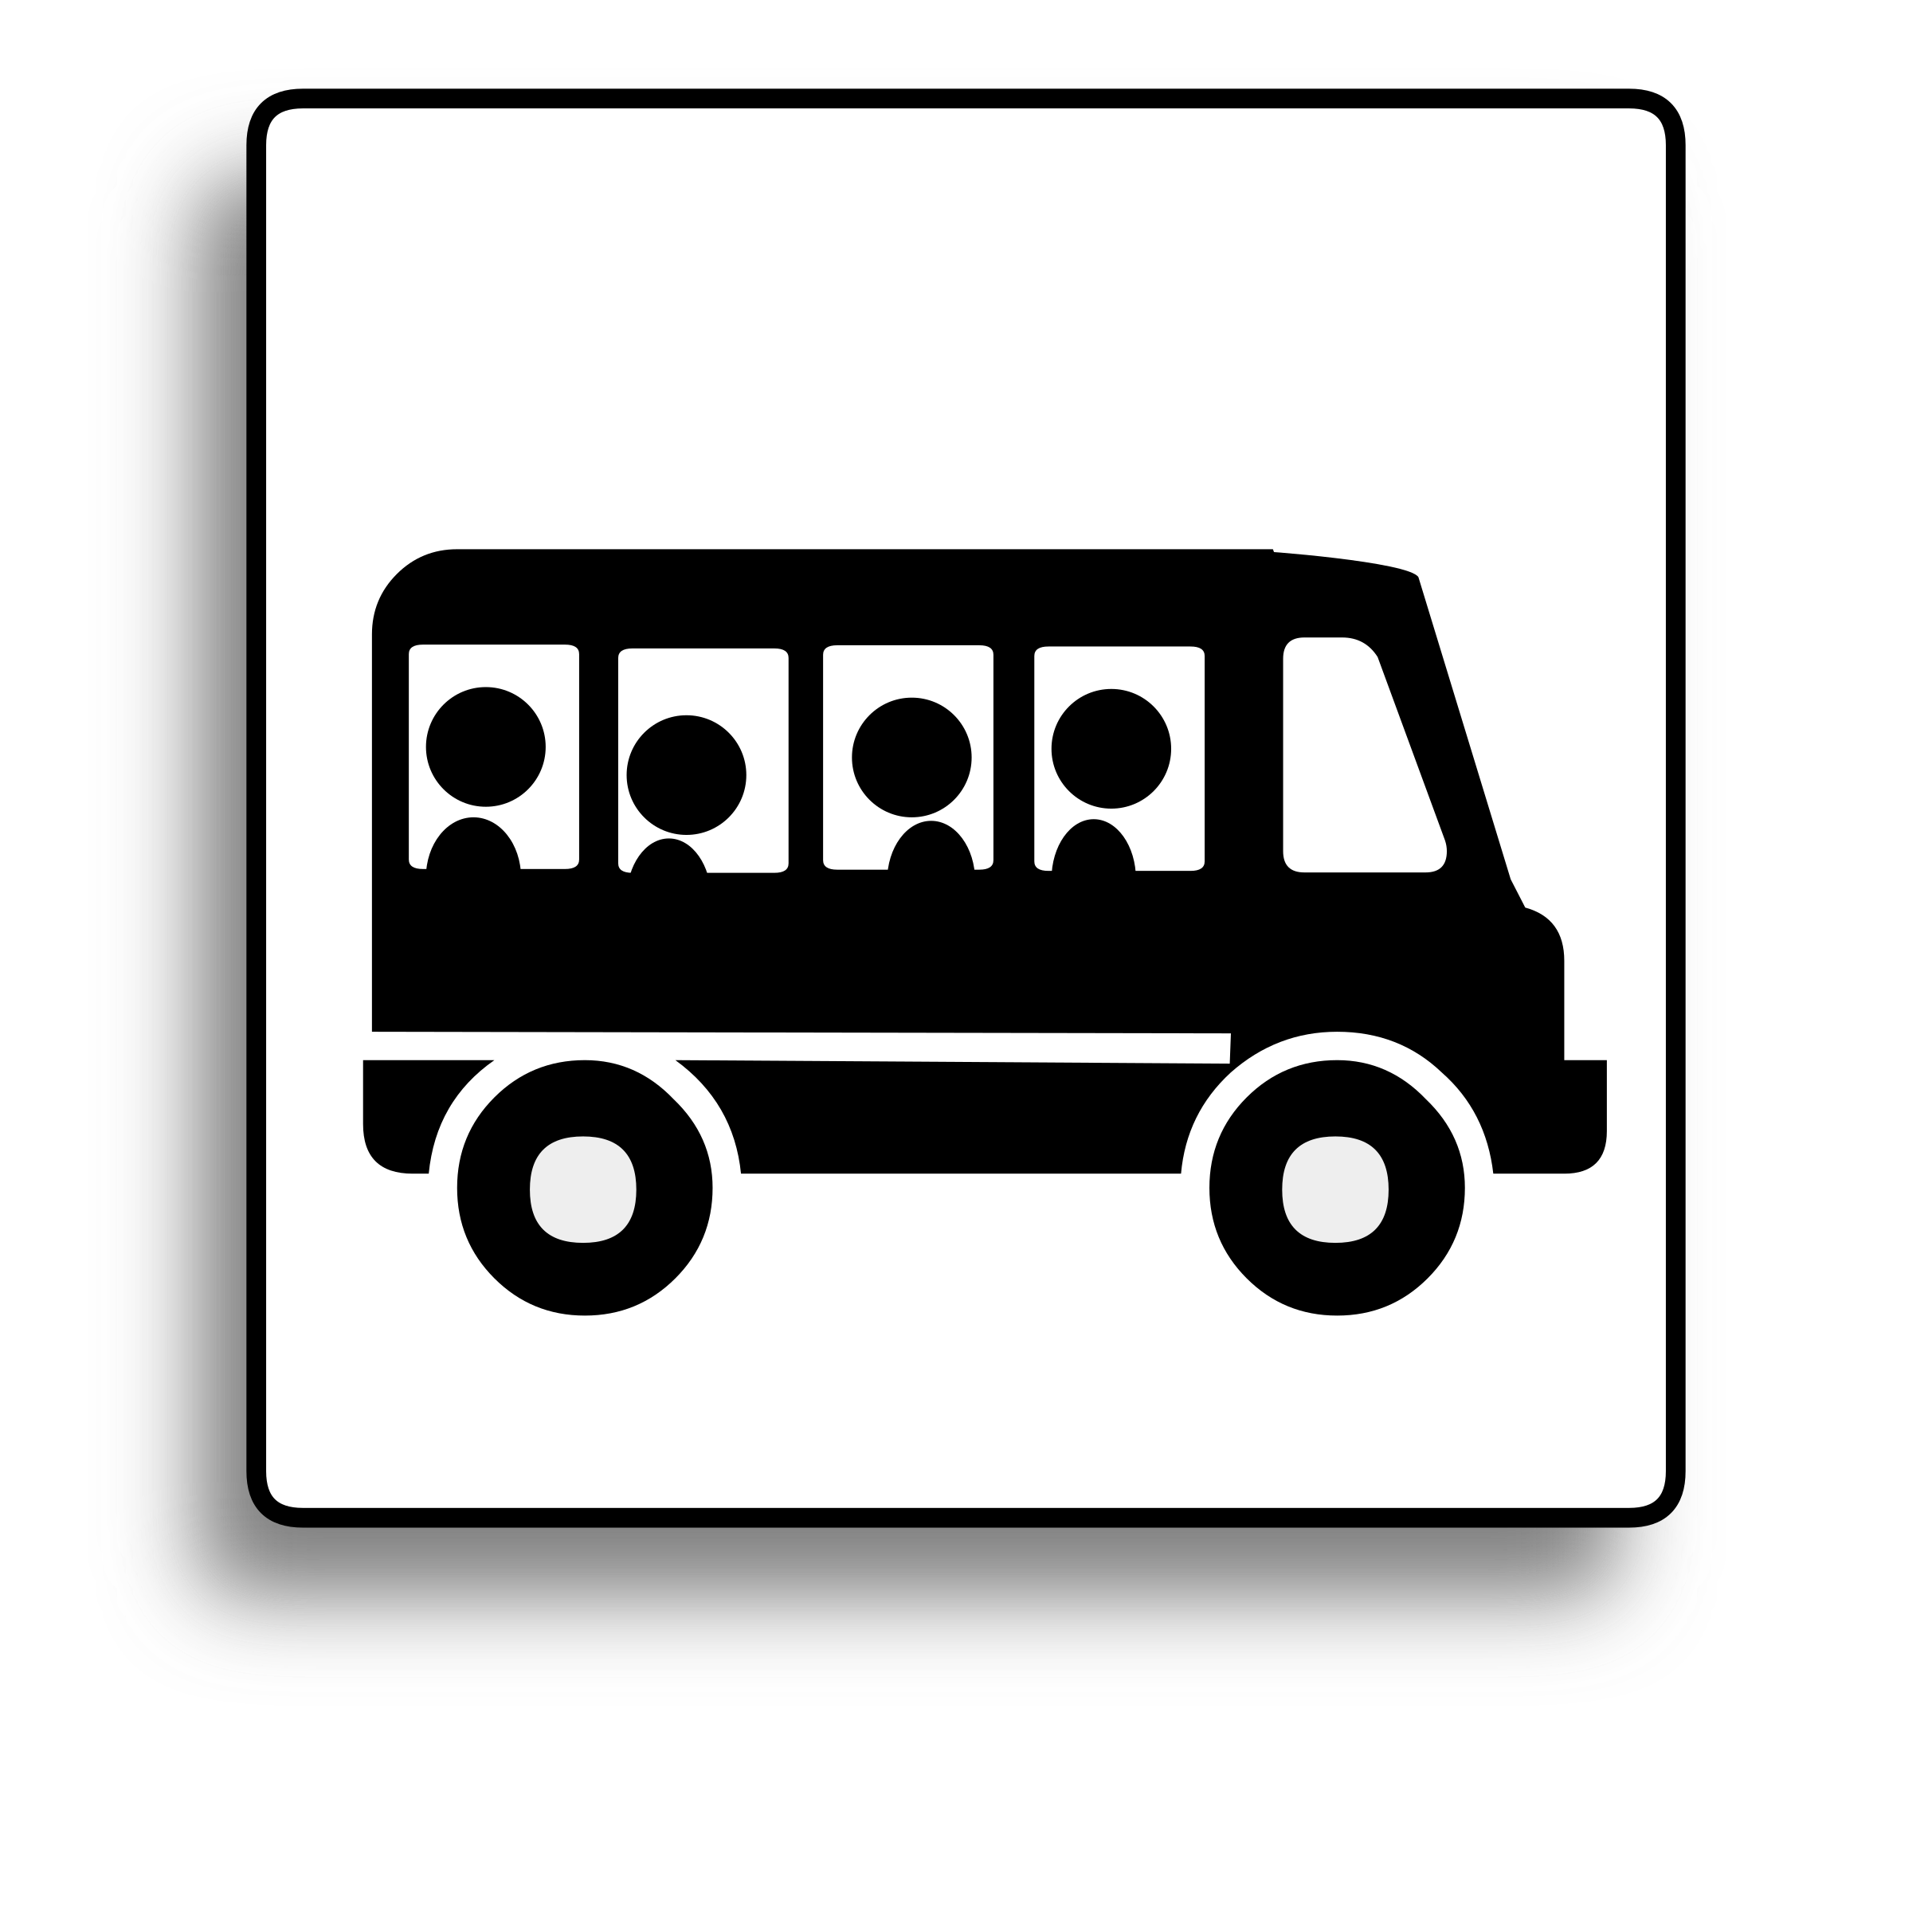 Book bus clipart clip royalty free stock Clipart - Bus Icon for use with signs or buttons clip royalty free stock